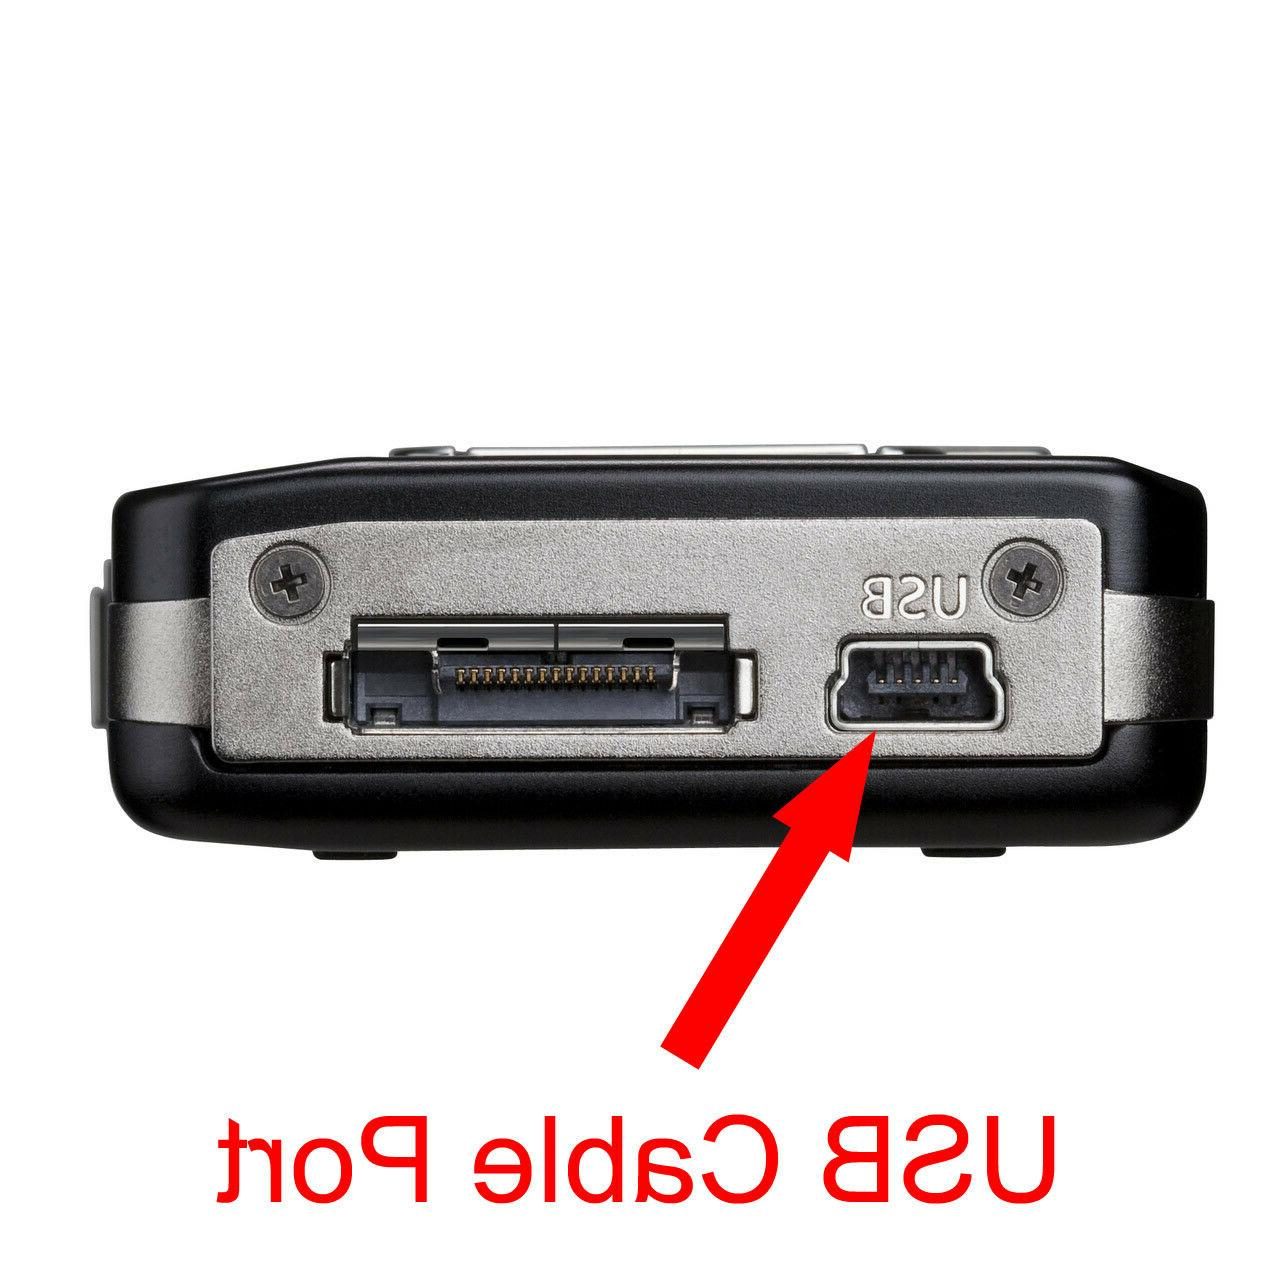 USB Cord for DS-2500 Recorder